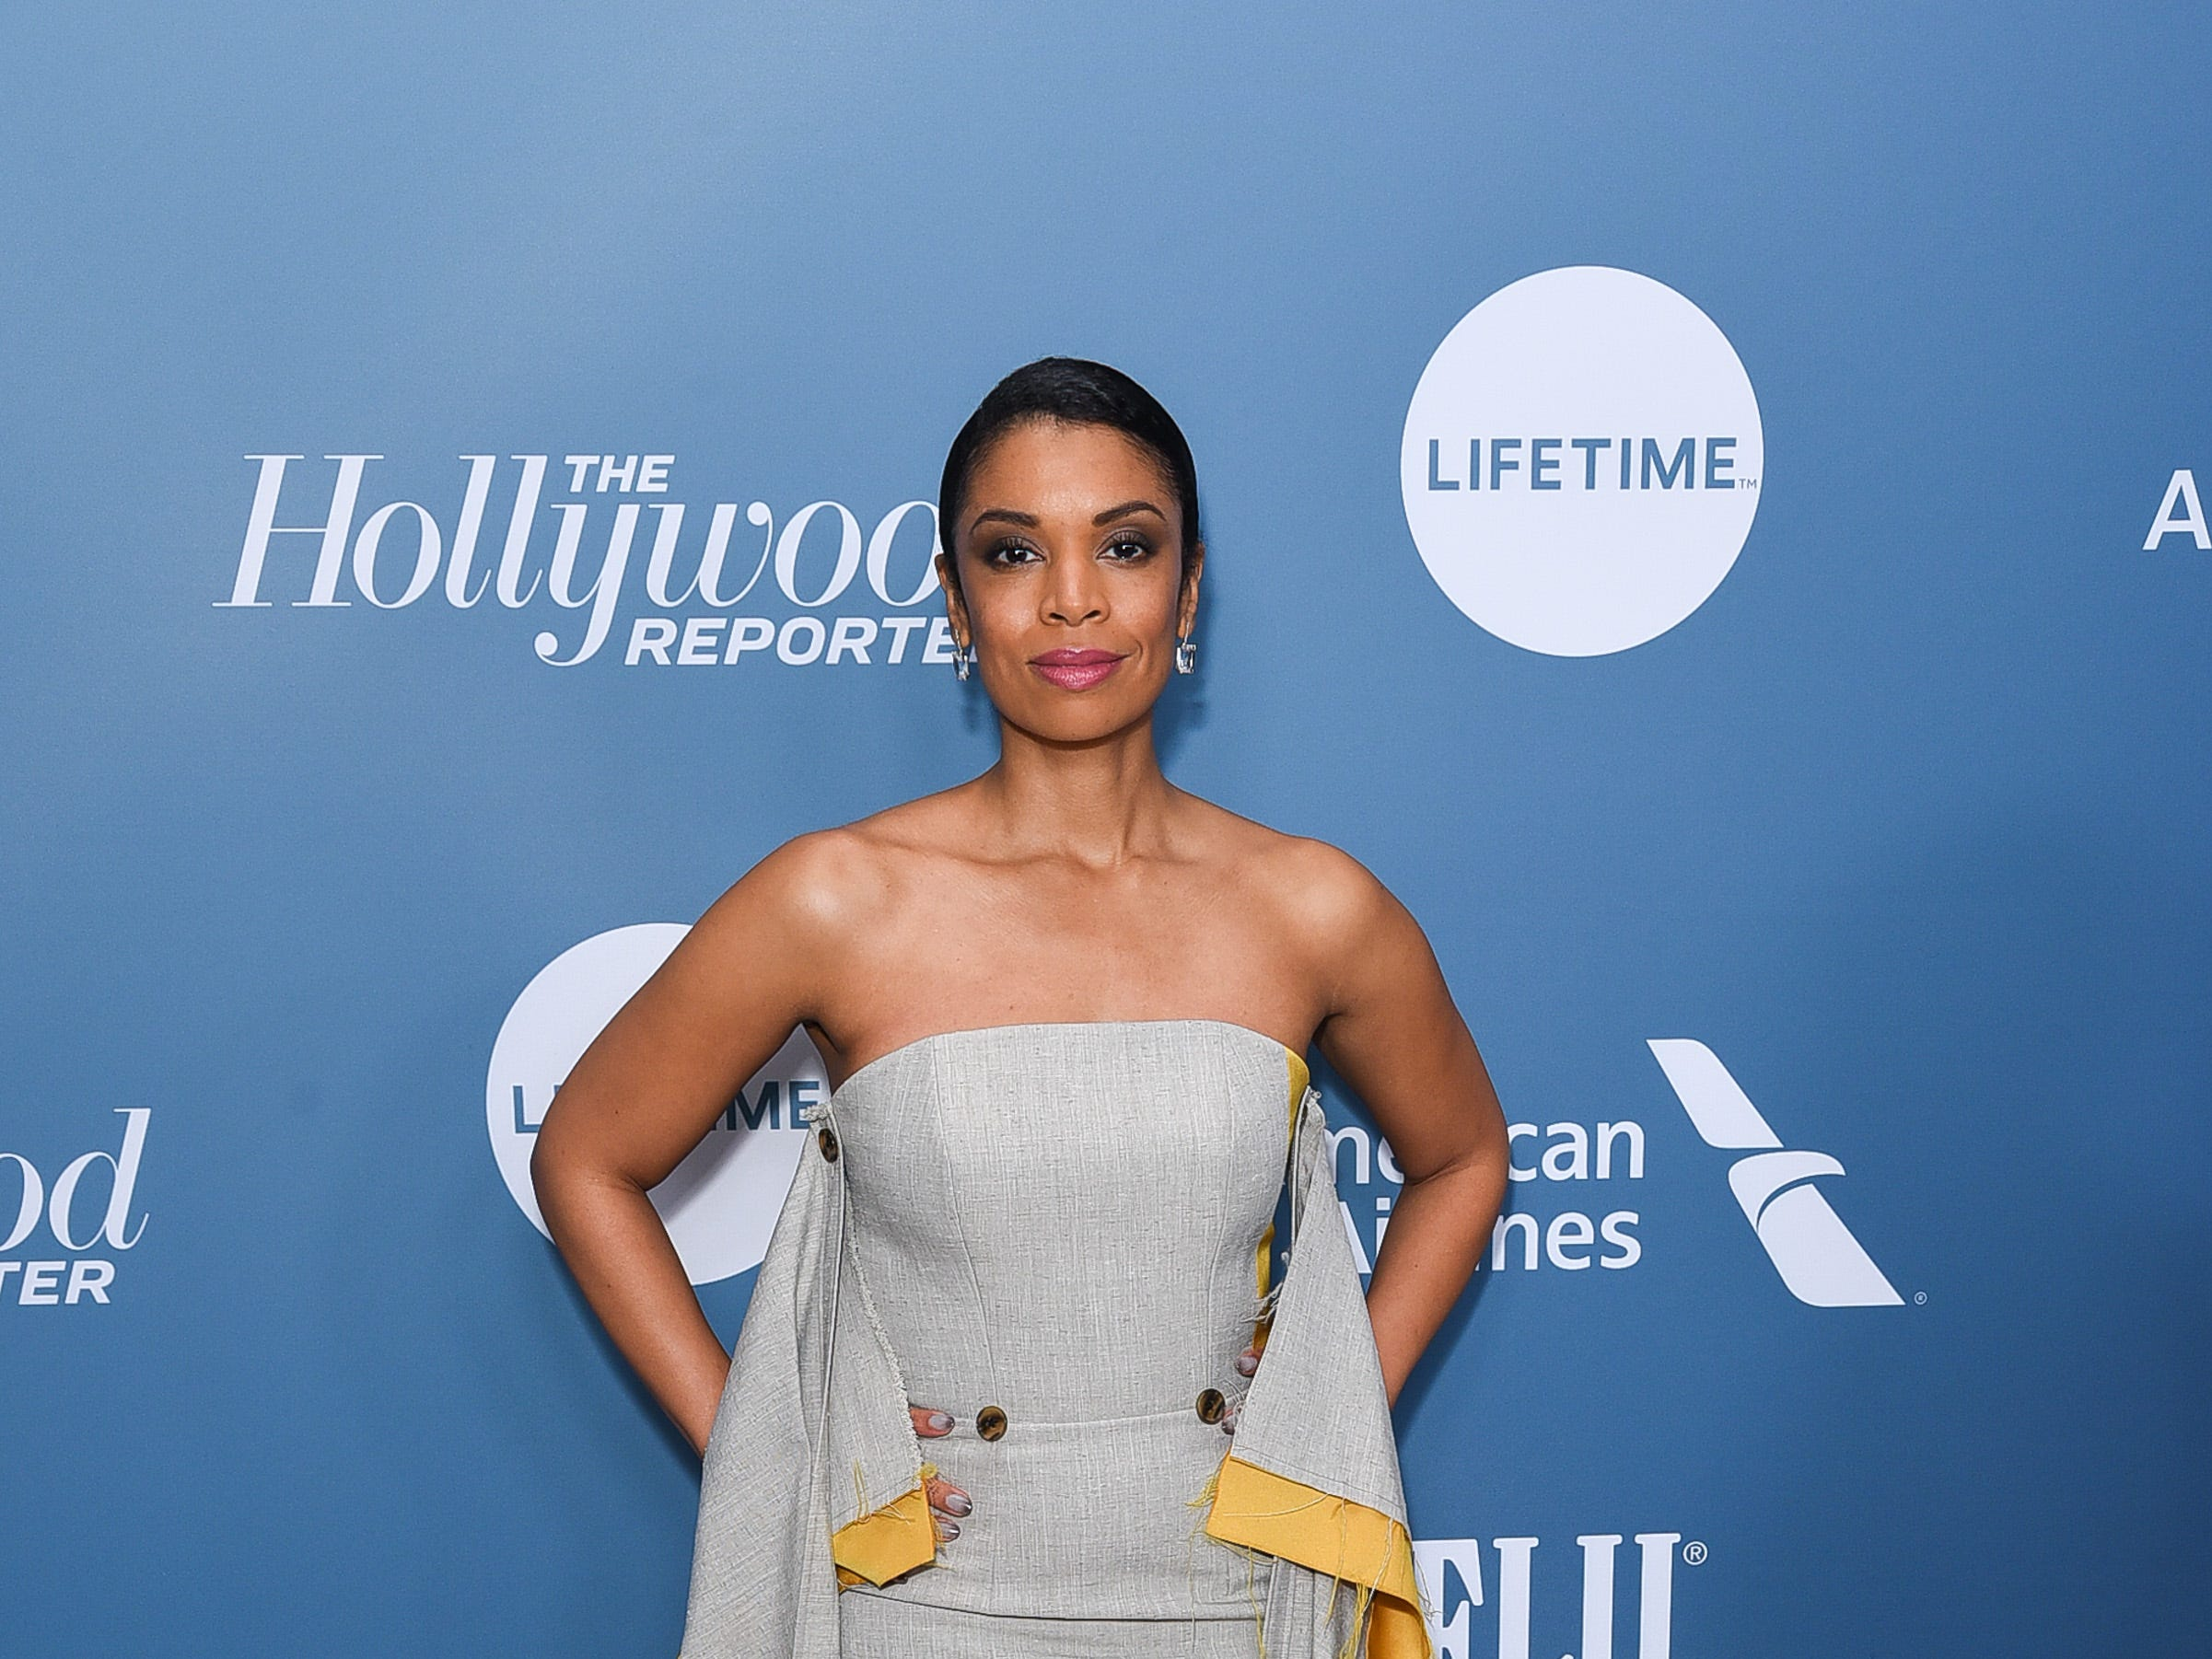 LOS ANGELES, CALIFORNIA - DECEMBER 05: Susan Kelechi Watson attends The Hollywood Reporter's Power 100 Women In Entertainment at Milk Studios on December 05, 2018 in Los Angeles, California. (Photo by Presley Ann/Getty Images) ORG XMIT: 775264723 ORIG FILE ID: 1077817408